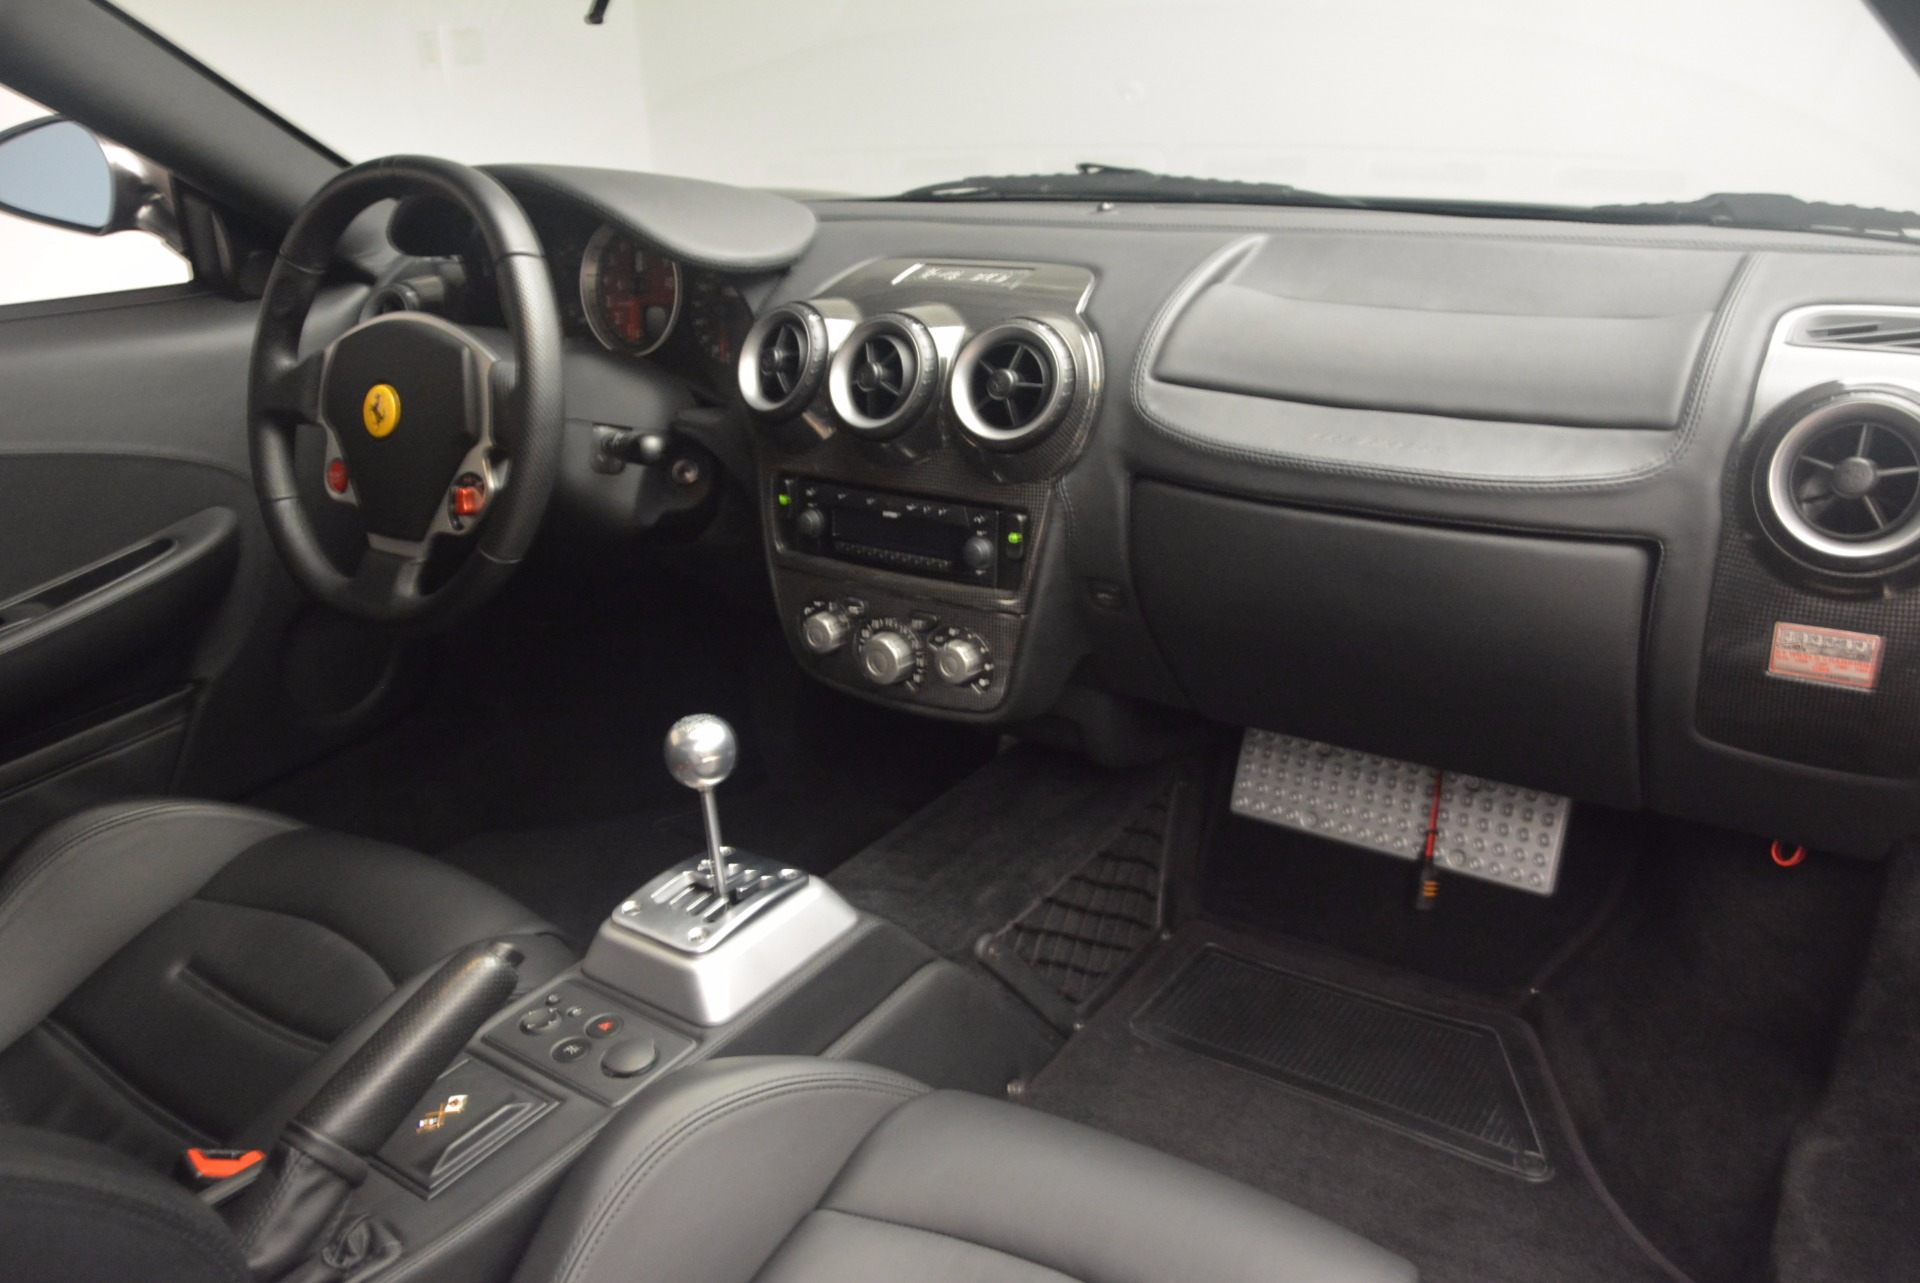 Used 2005 Ferrari F430 6-Speed Manual For Sale In Greenwich, CT. Alfa Romeo of Greenwich, 4391 1286_p17